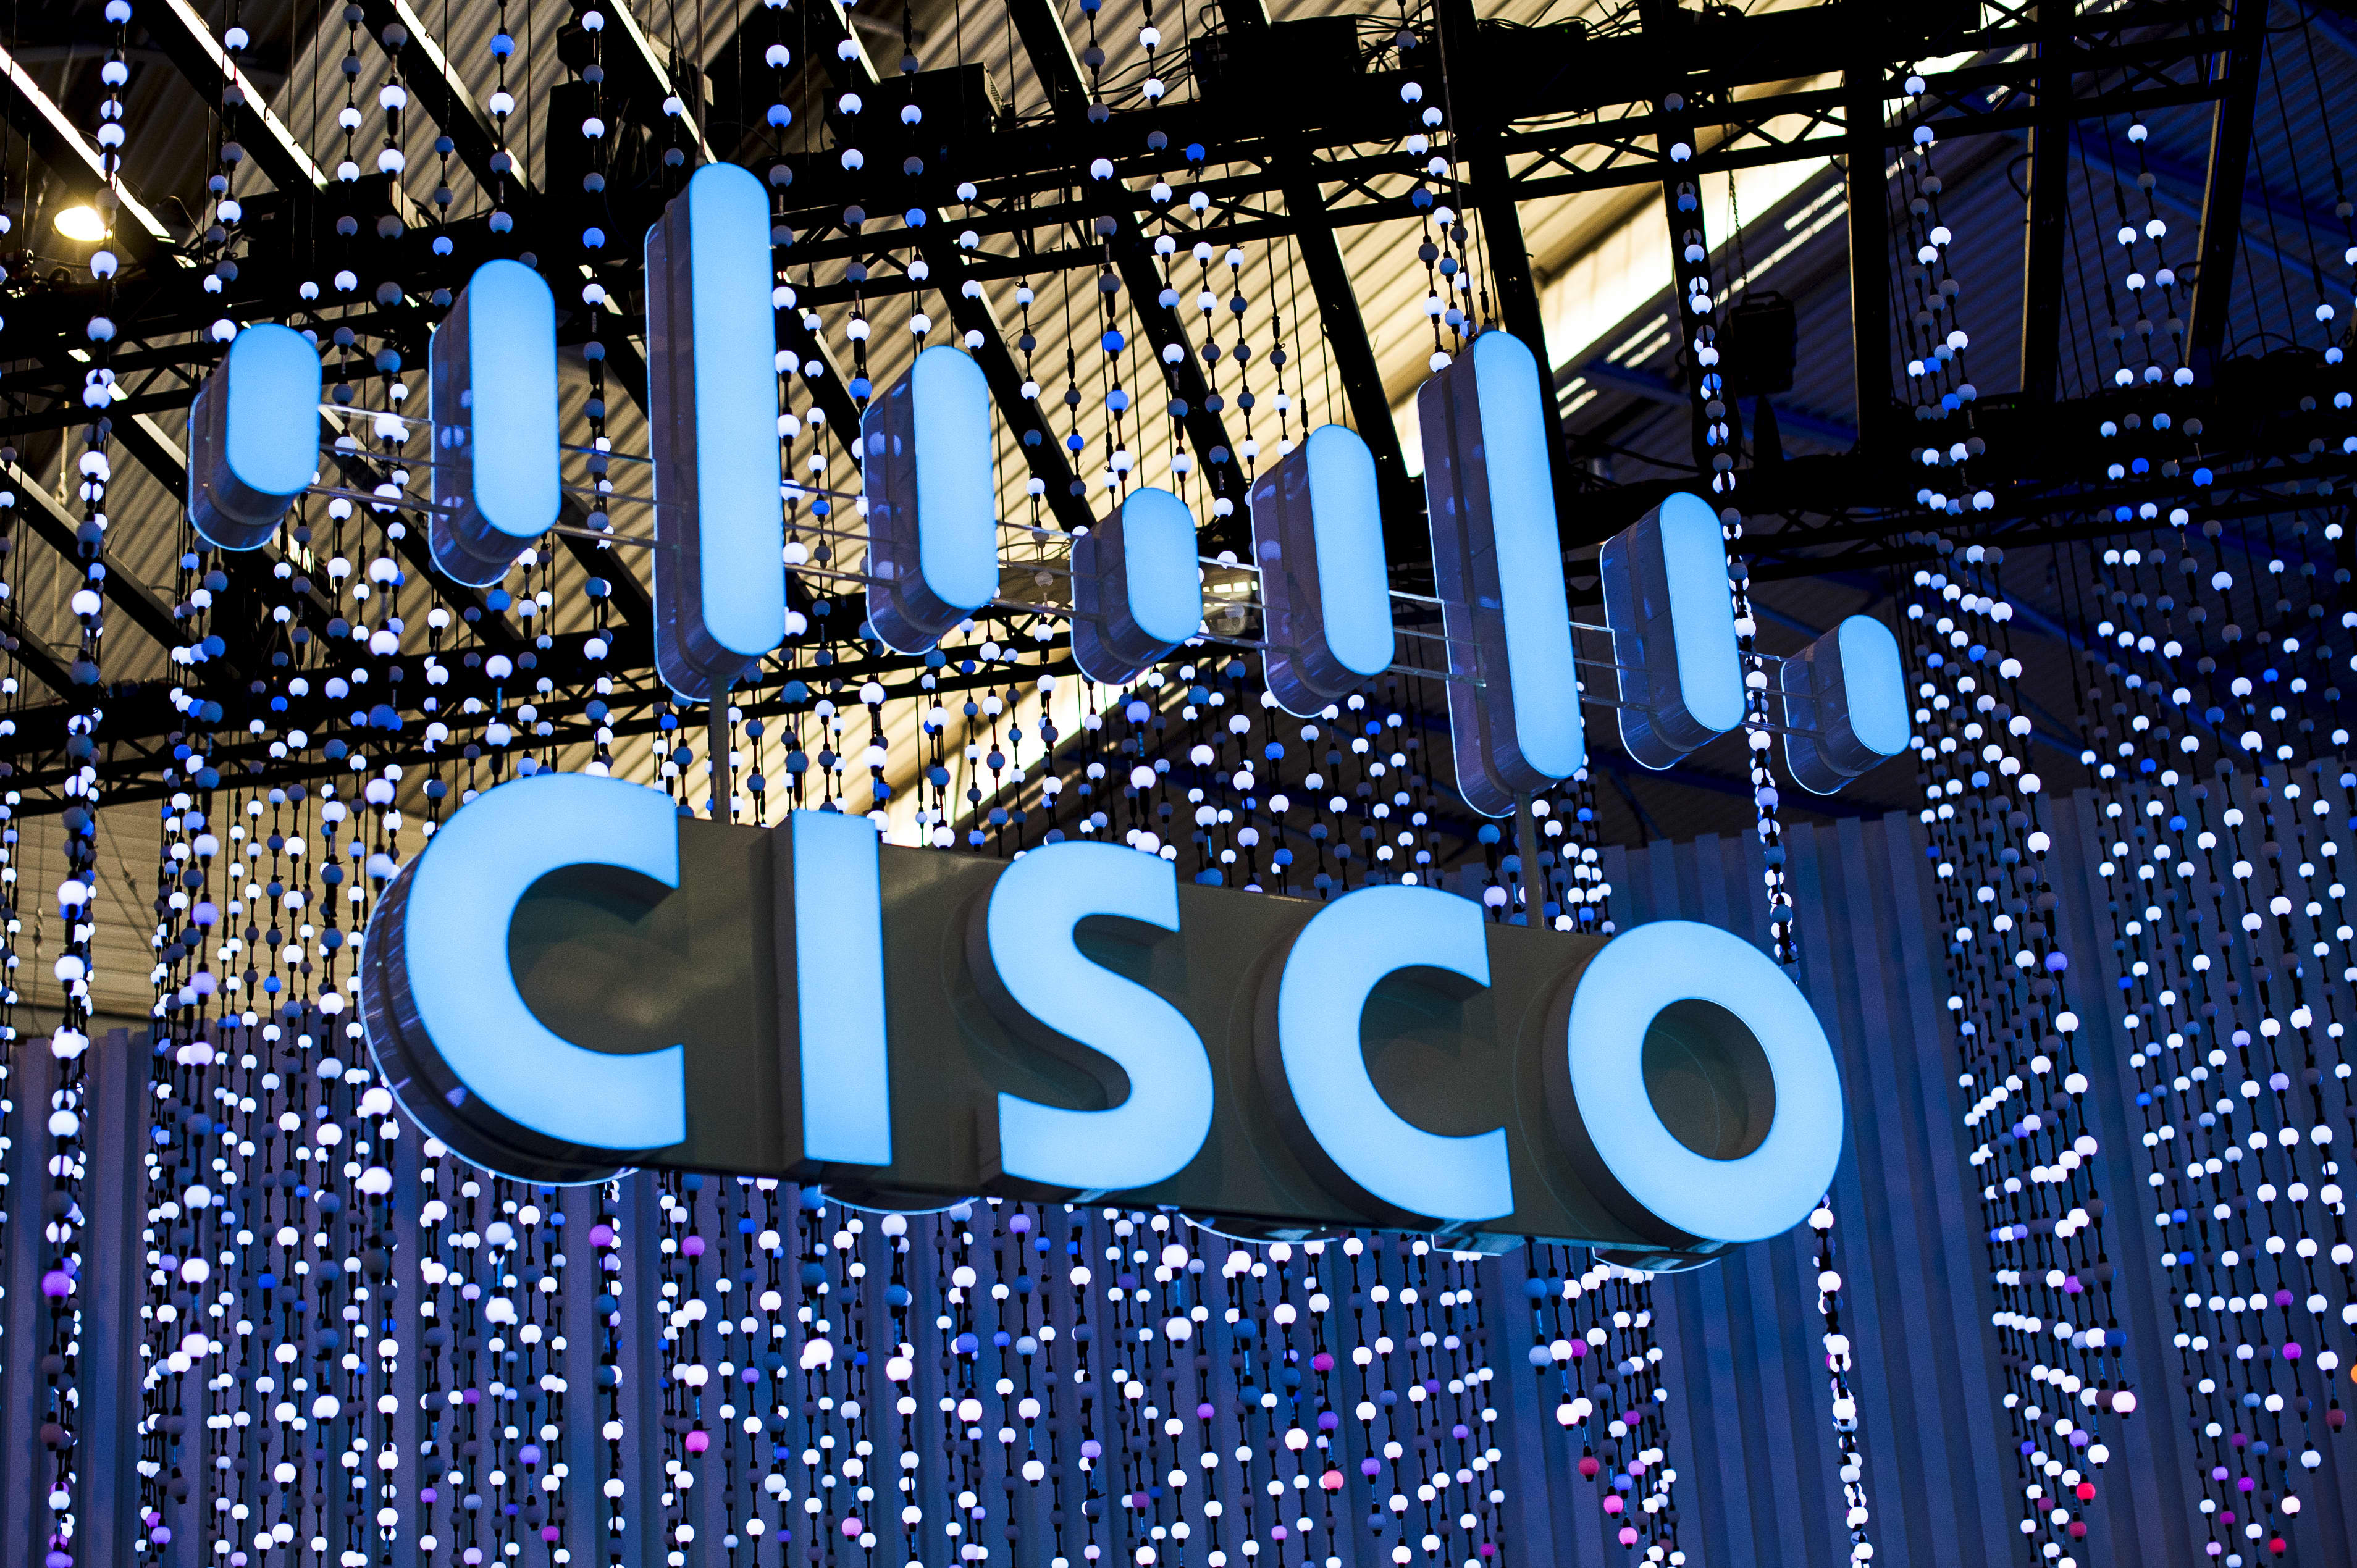 Cisco is the big tech stock to buy for low China trade risk, Bank of America says